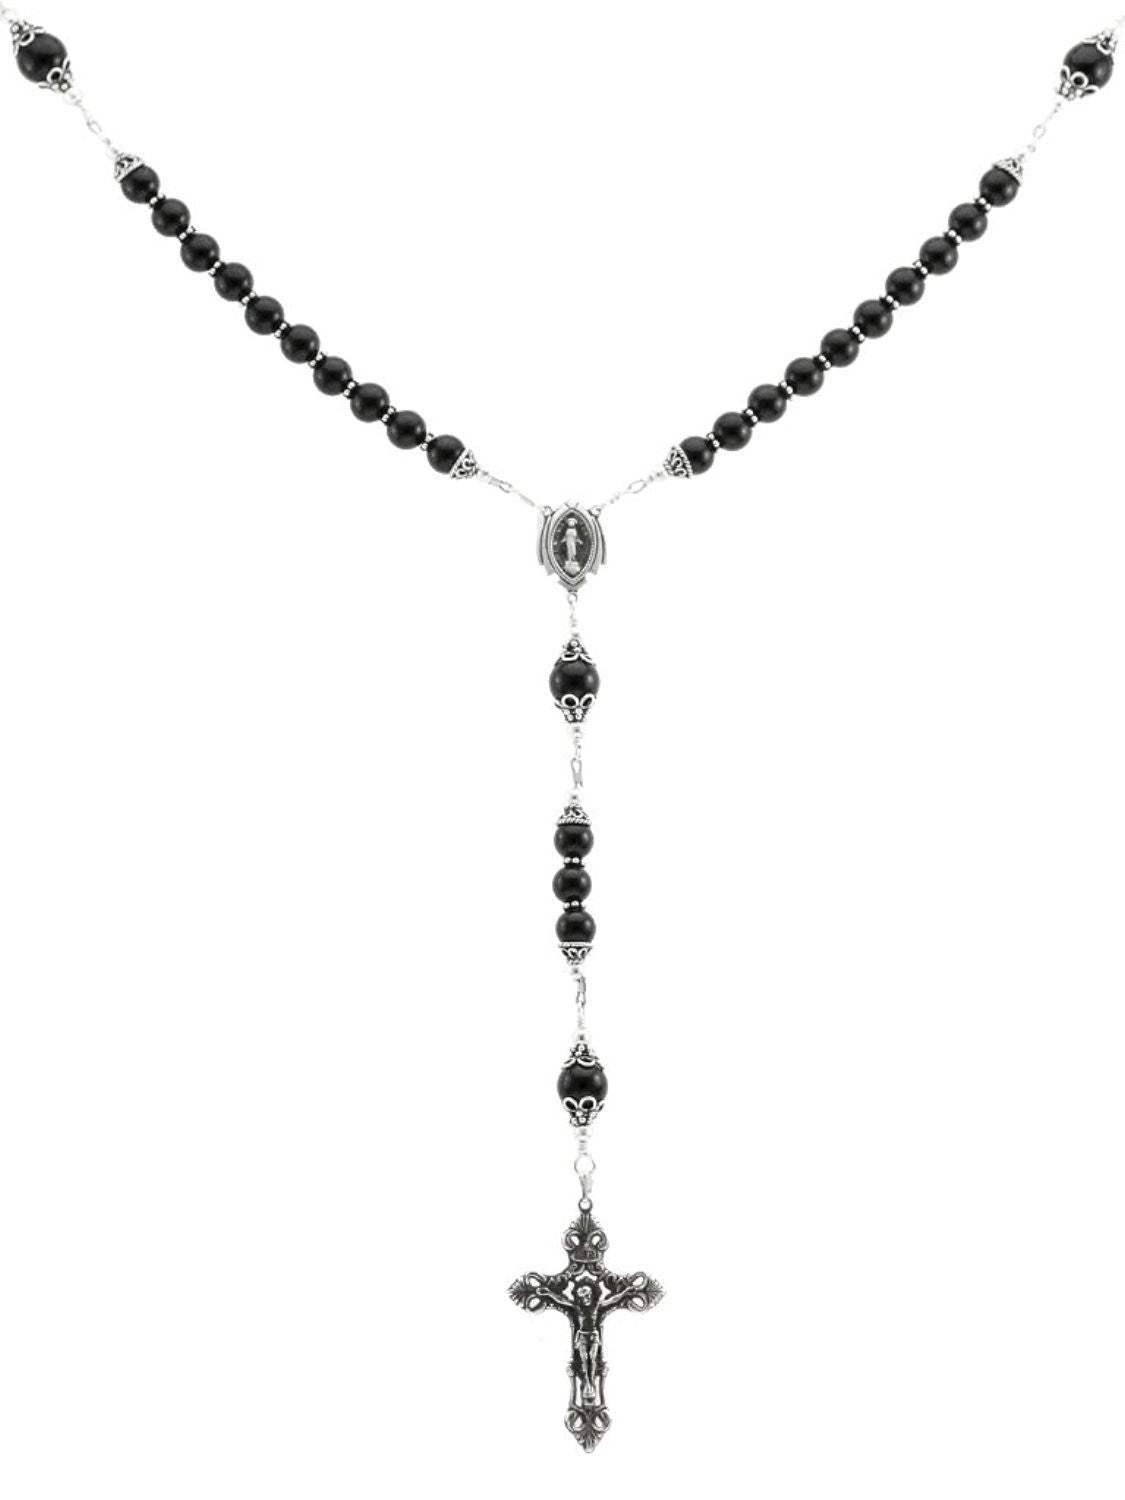 Sterling Silver Rosary Necklace Onyx with Crucifix & Miraculous Medal